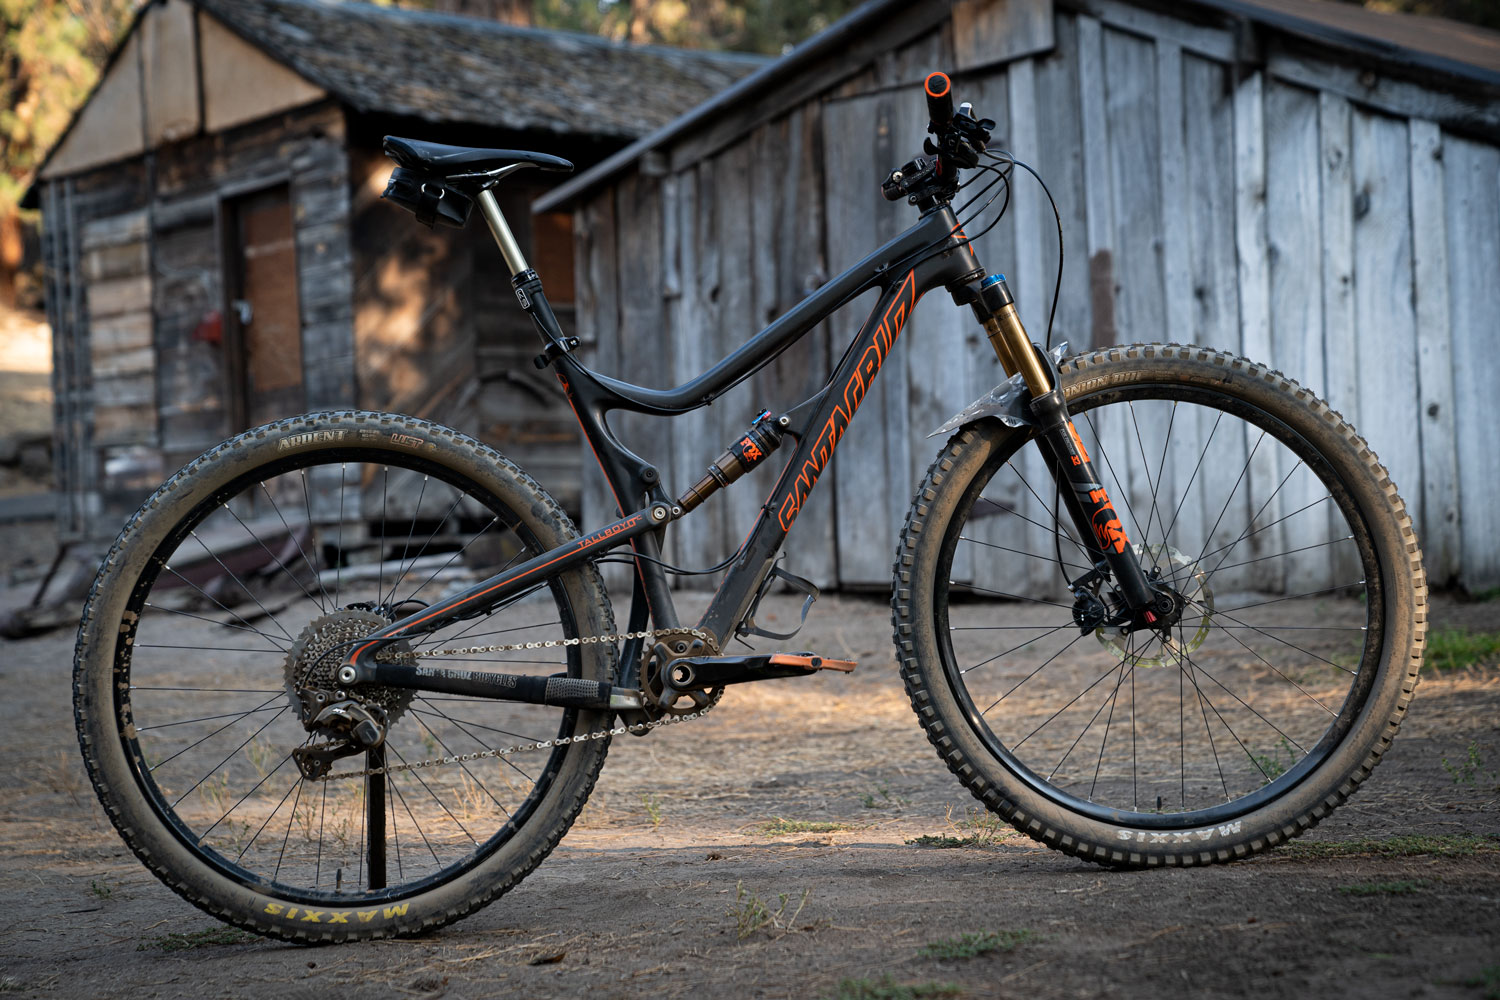 2013 Santa Cruz Tallboy LTc - Average Bike For The Average Guy